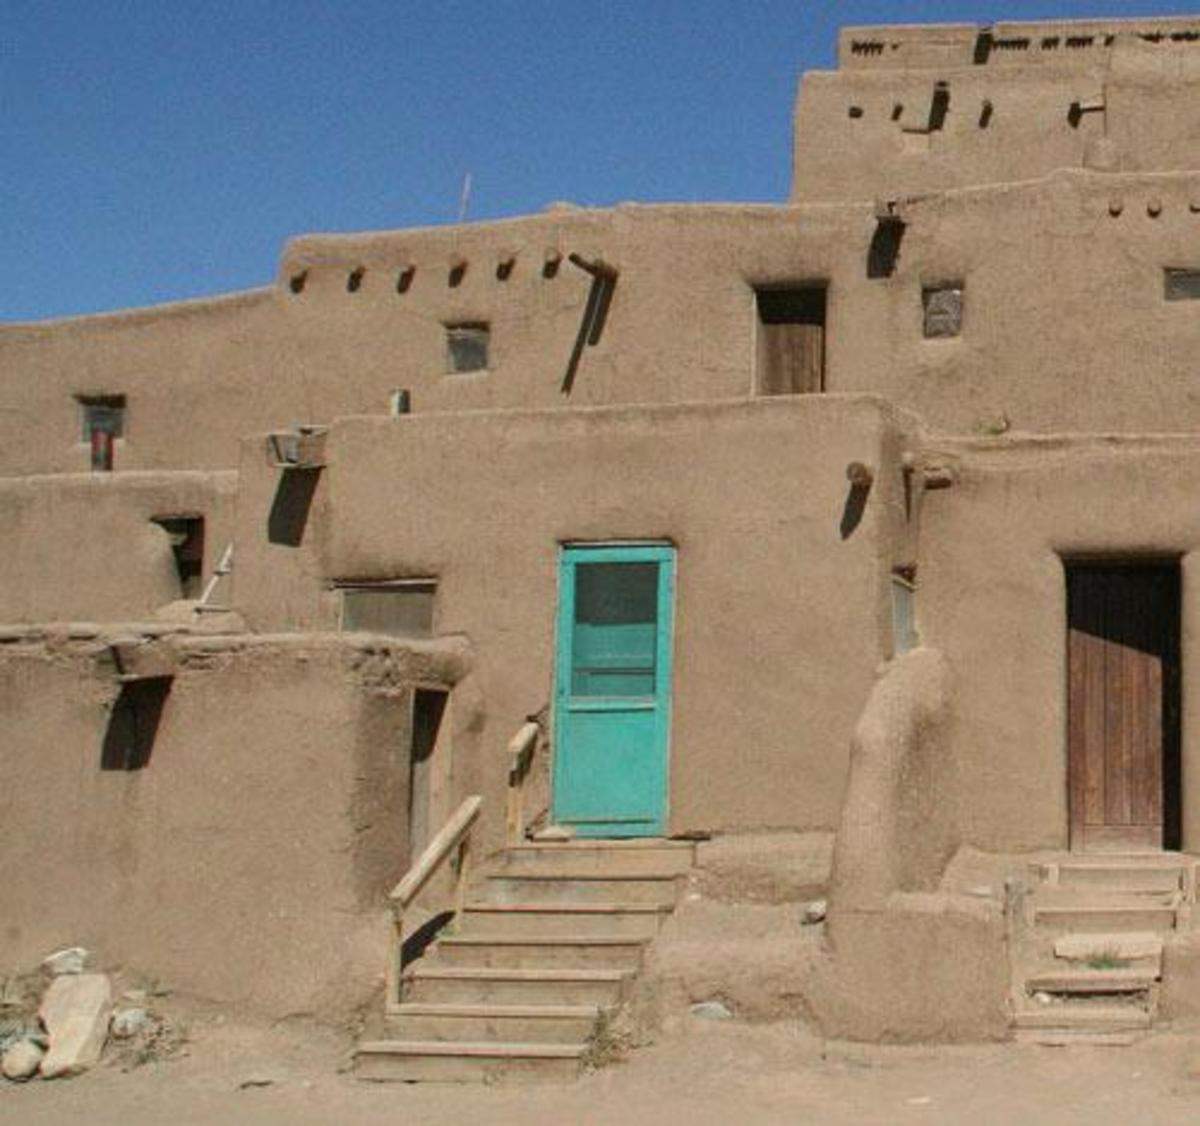 Taos pueblo with blue door similar to Henrietta's pueblo.